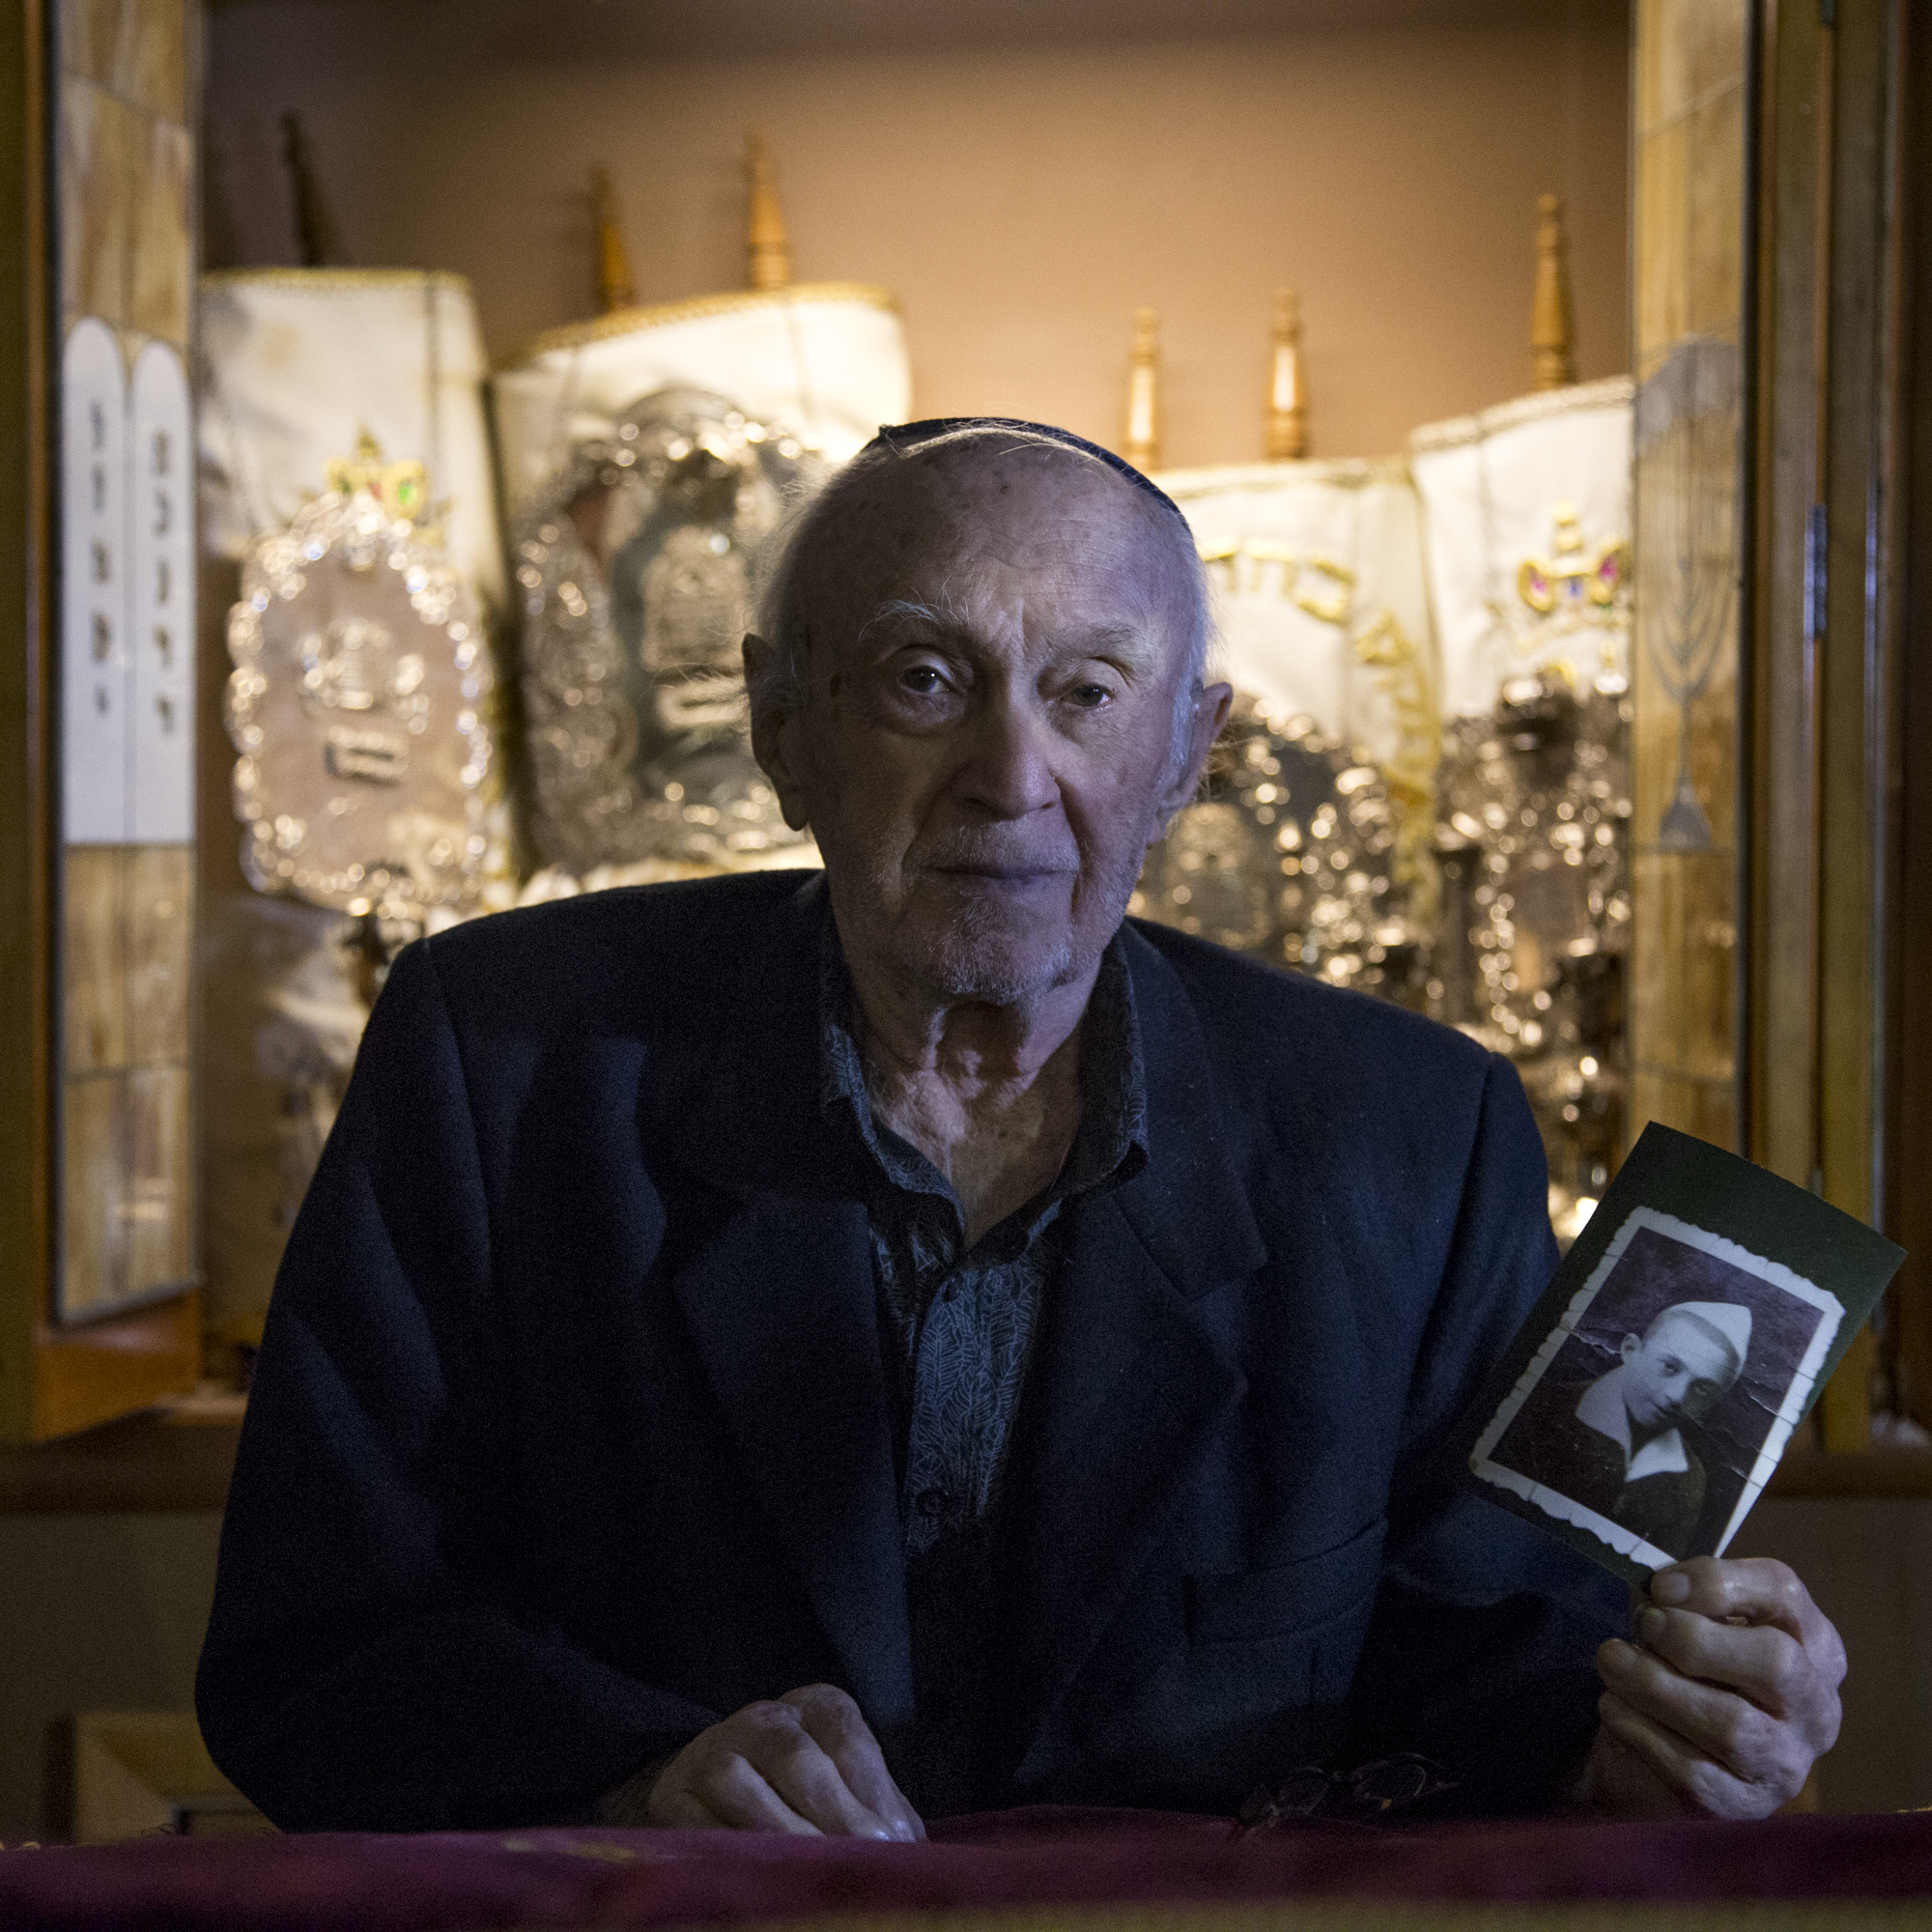 Holocaust survivor Chaim Ben-Aron holds a photo of himself just after liberation. He poses in front of the Torahs at his son's synagogue on Staten Island.